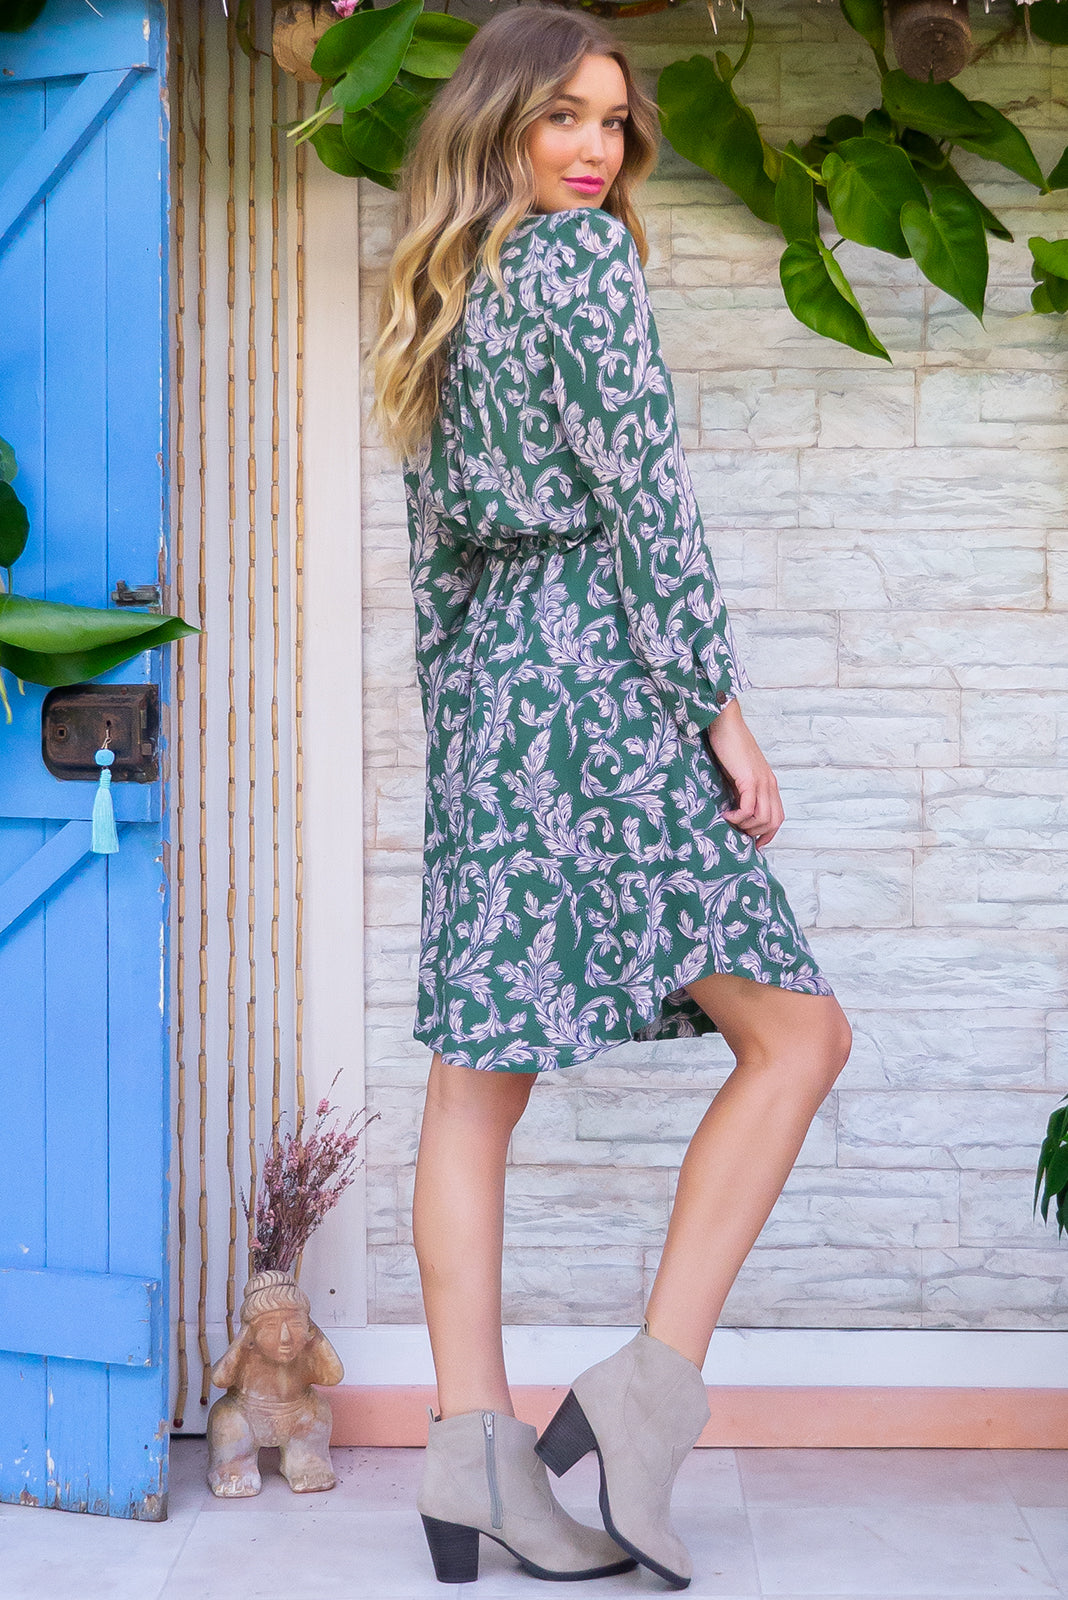 Alexandra Green Elysia Shirt Dress features a functional button front, long sleeve, drawstring waist and chic collar and it comes in a classic soft green and dark cream paisley print on 100% rayon